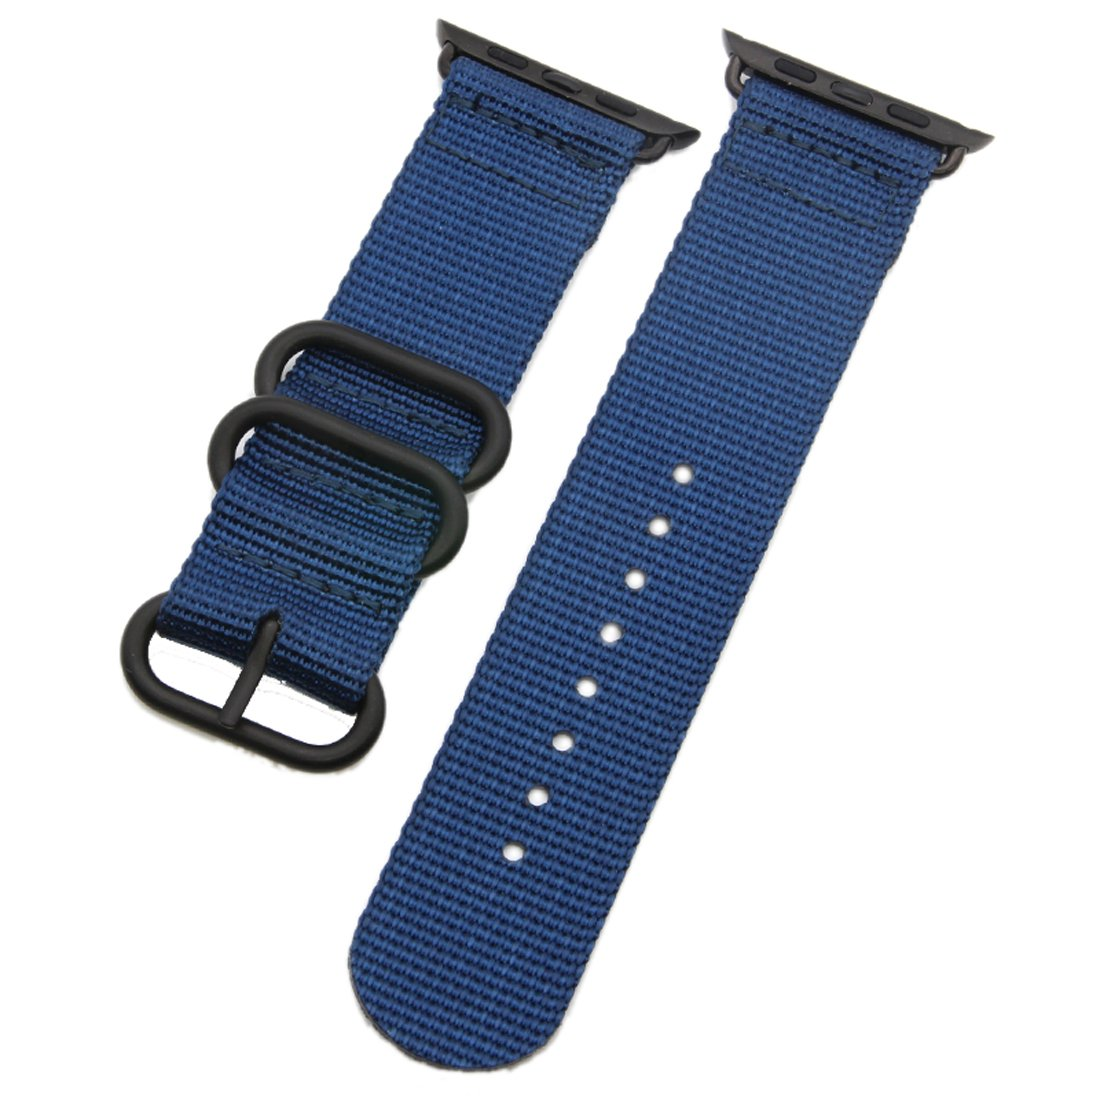 Top Grade Superior Soft Nato style Ballistic Nylon Watch Band Strap Replacement for iWatch Blue 38mm